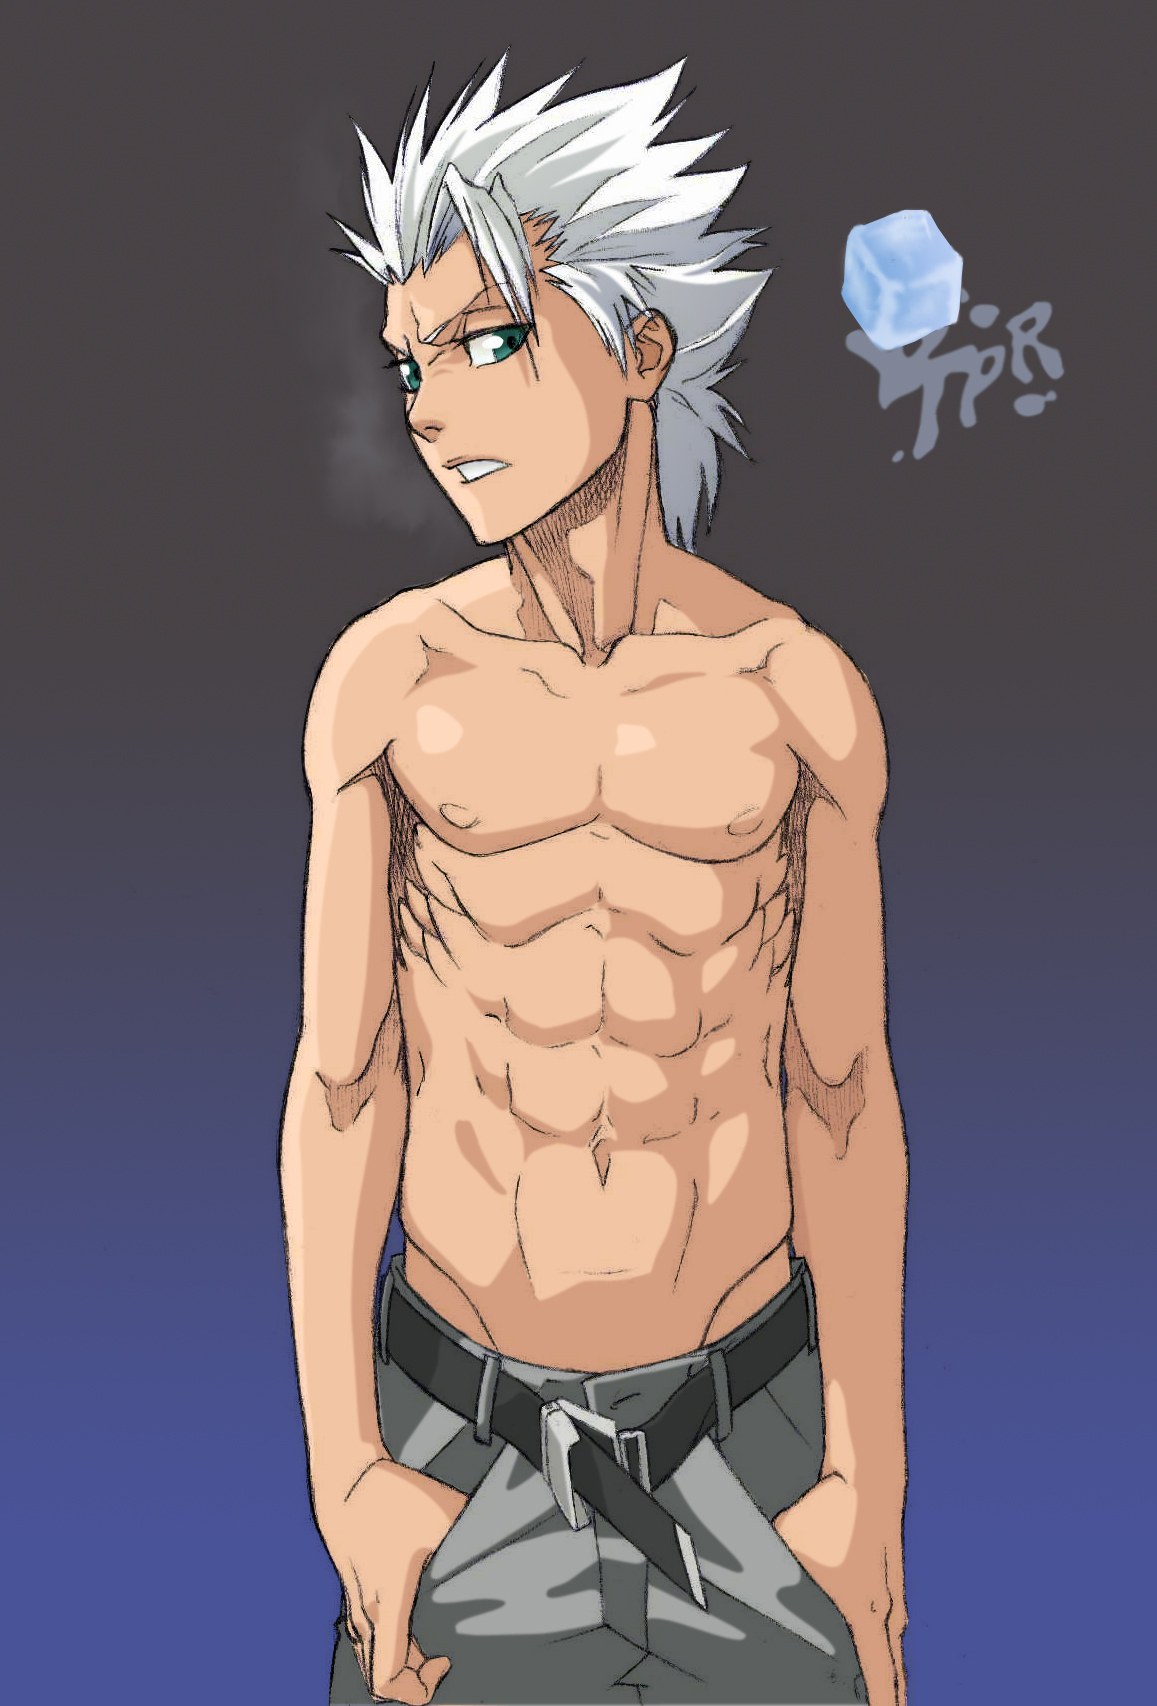 Dragón de hielo. Hitsugaya___BLEACH_Series_by_ToPpeRa_TPR